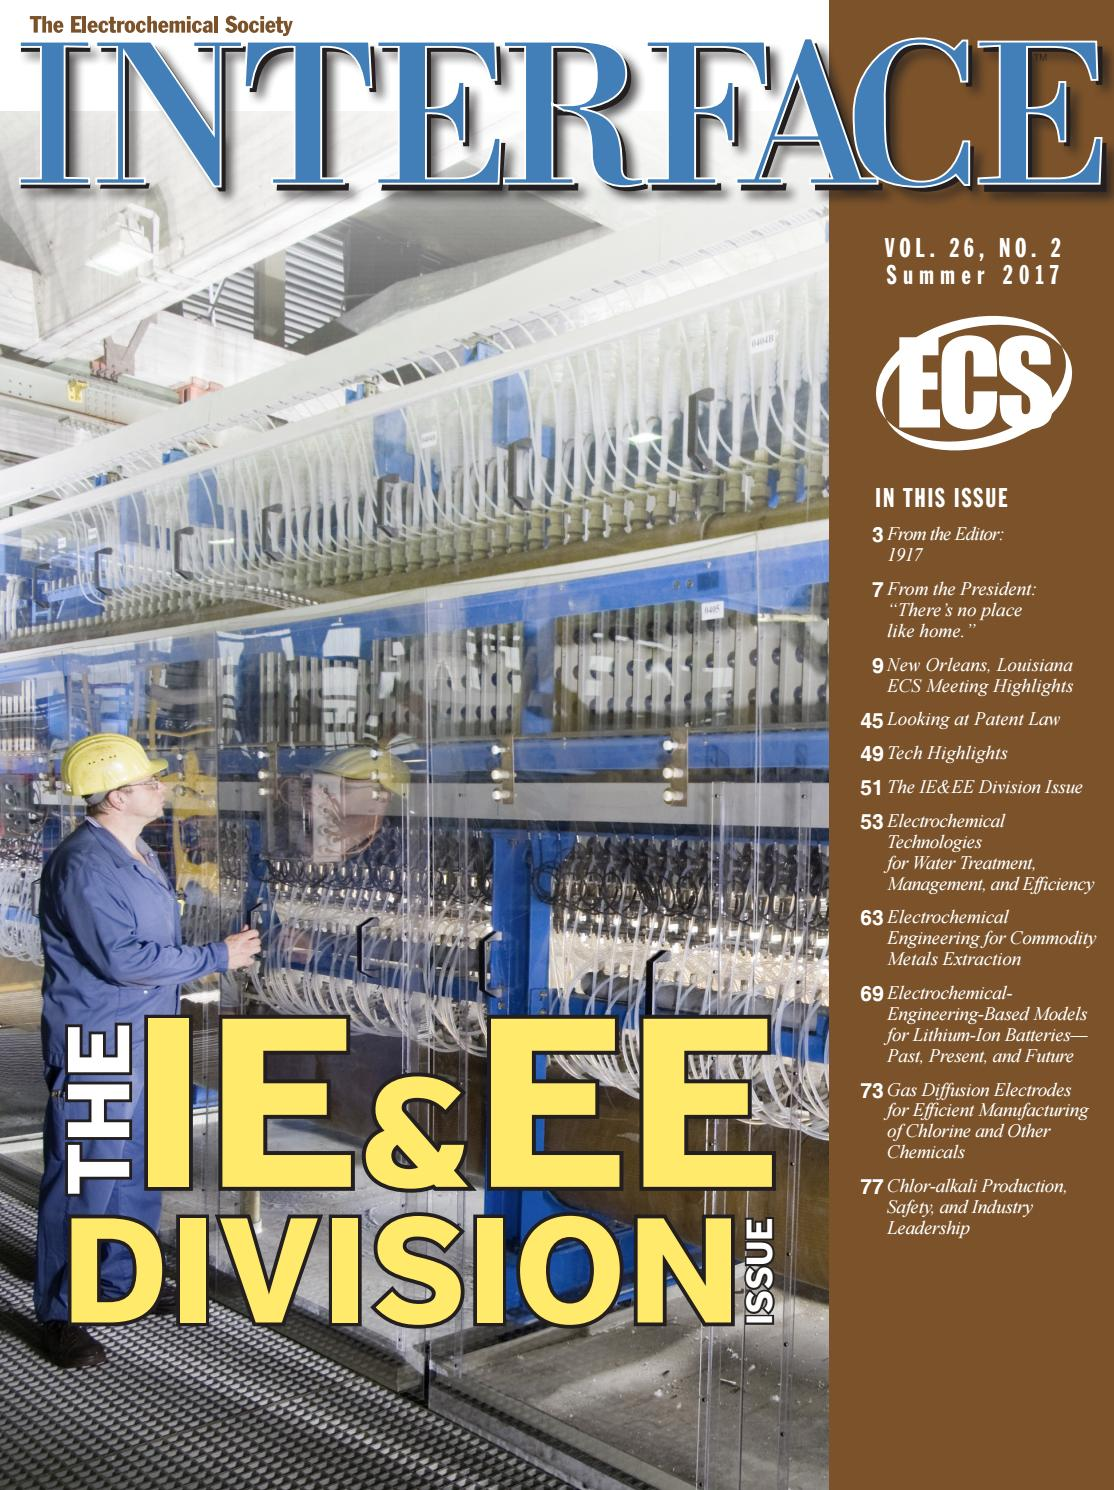 Interface Vol. 26, No. 2, Summer 2017 by The Electrochemical Society - issuu